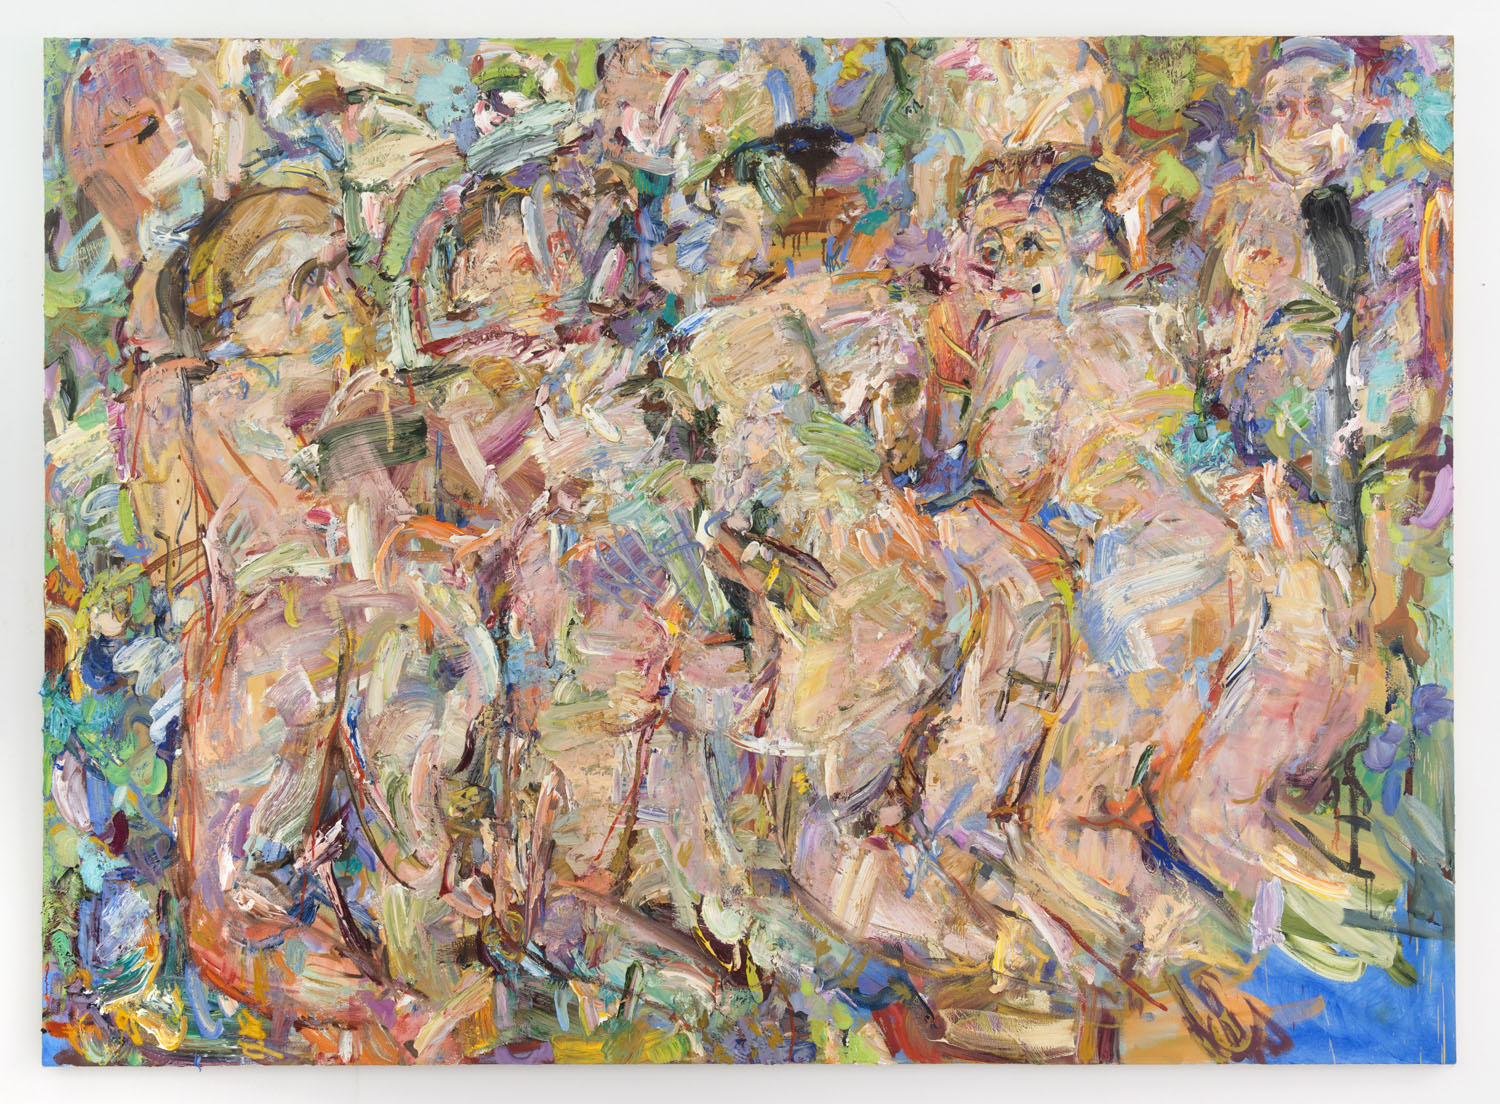 Asking for It,  2018, oil on canvas, 72 x 100 inches, 183 x 254 cm.  Courtesy of The Hole, New York.